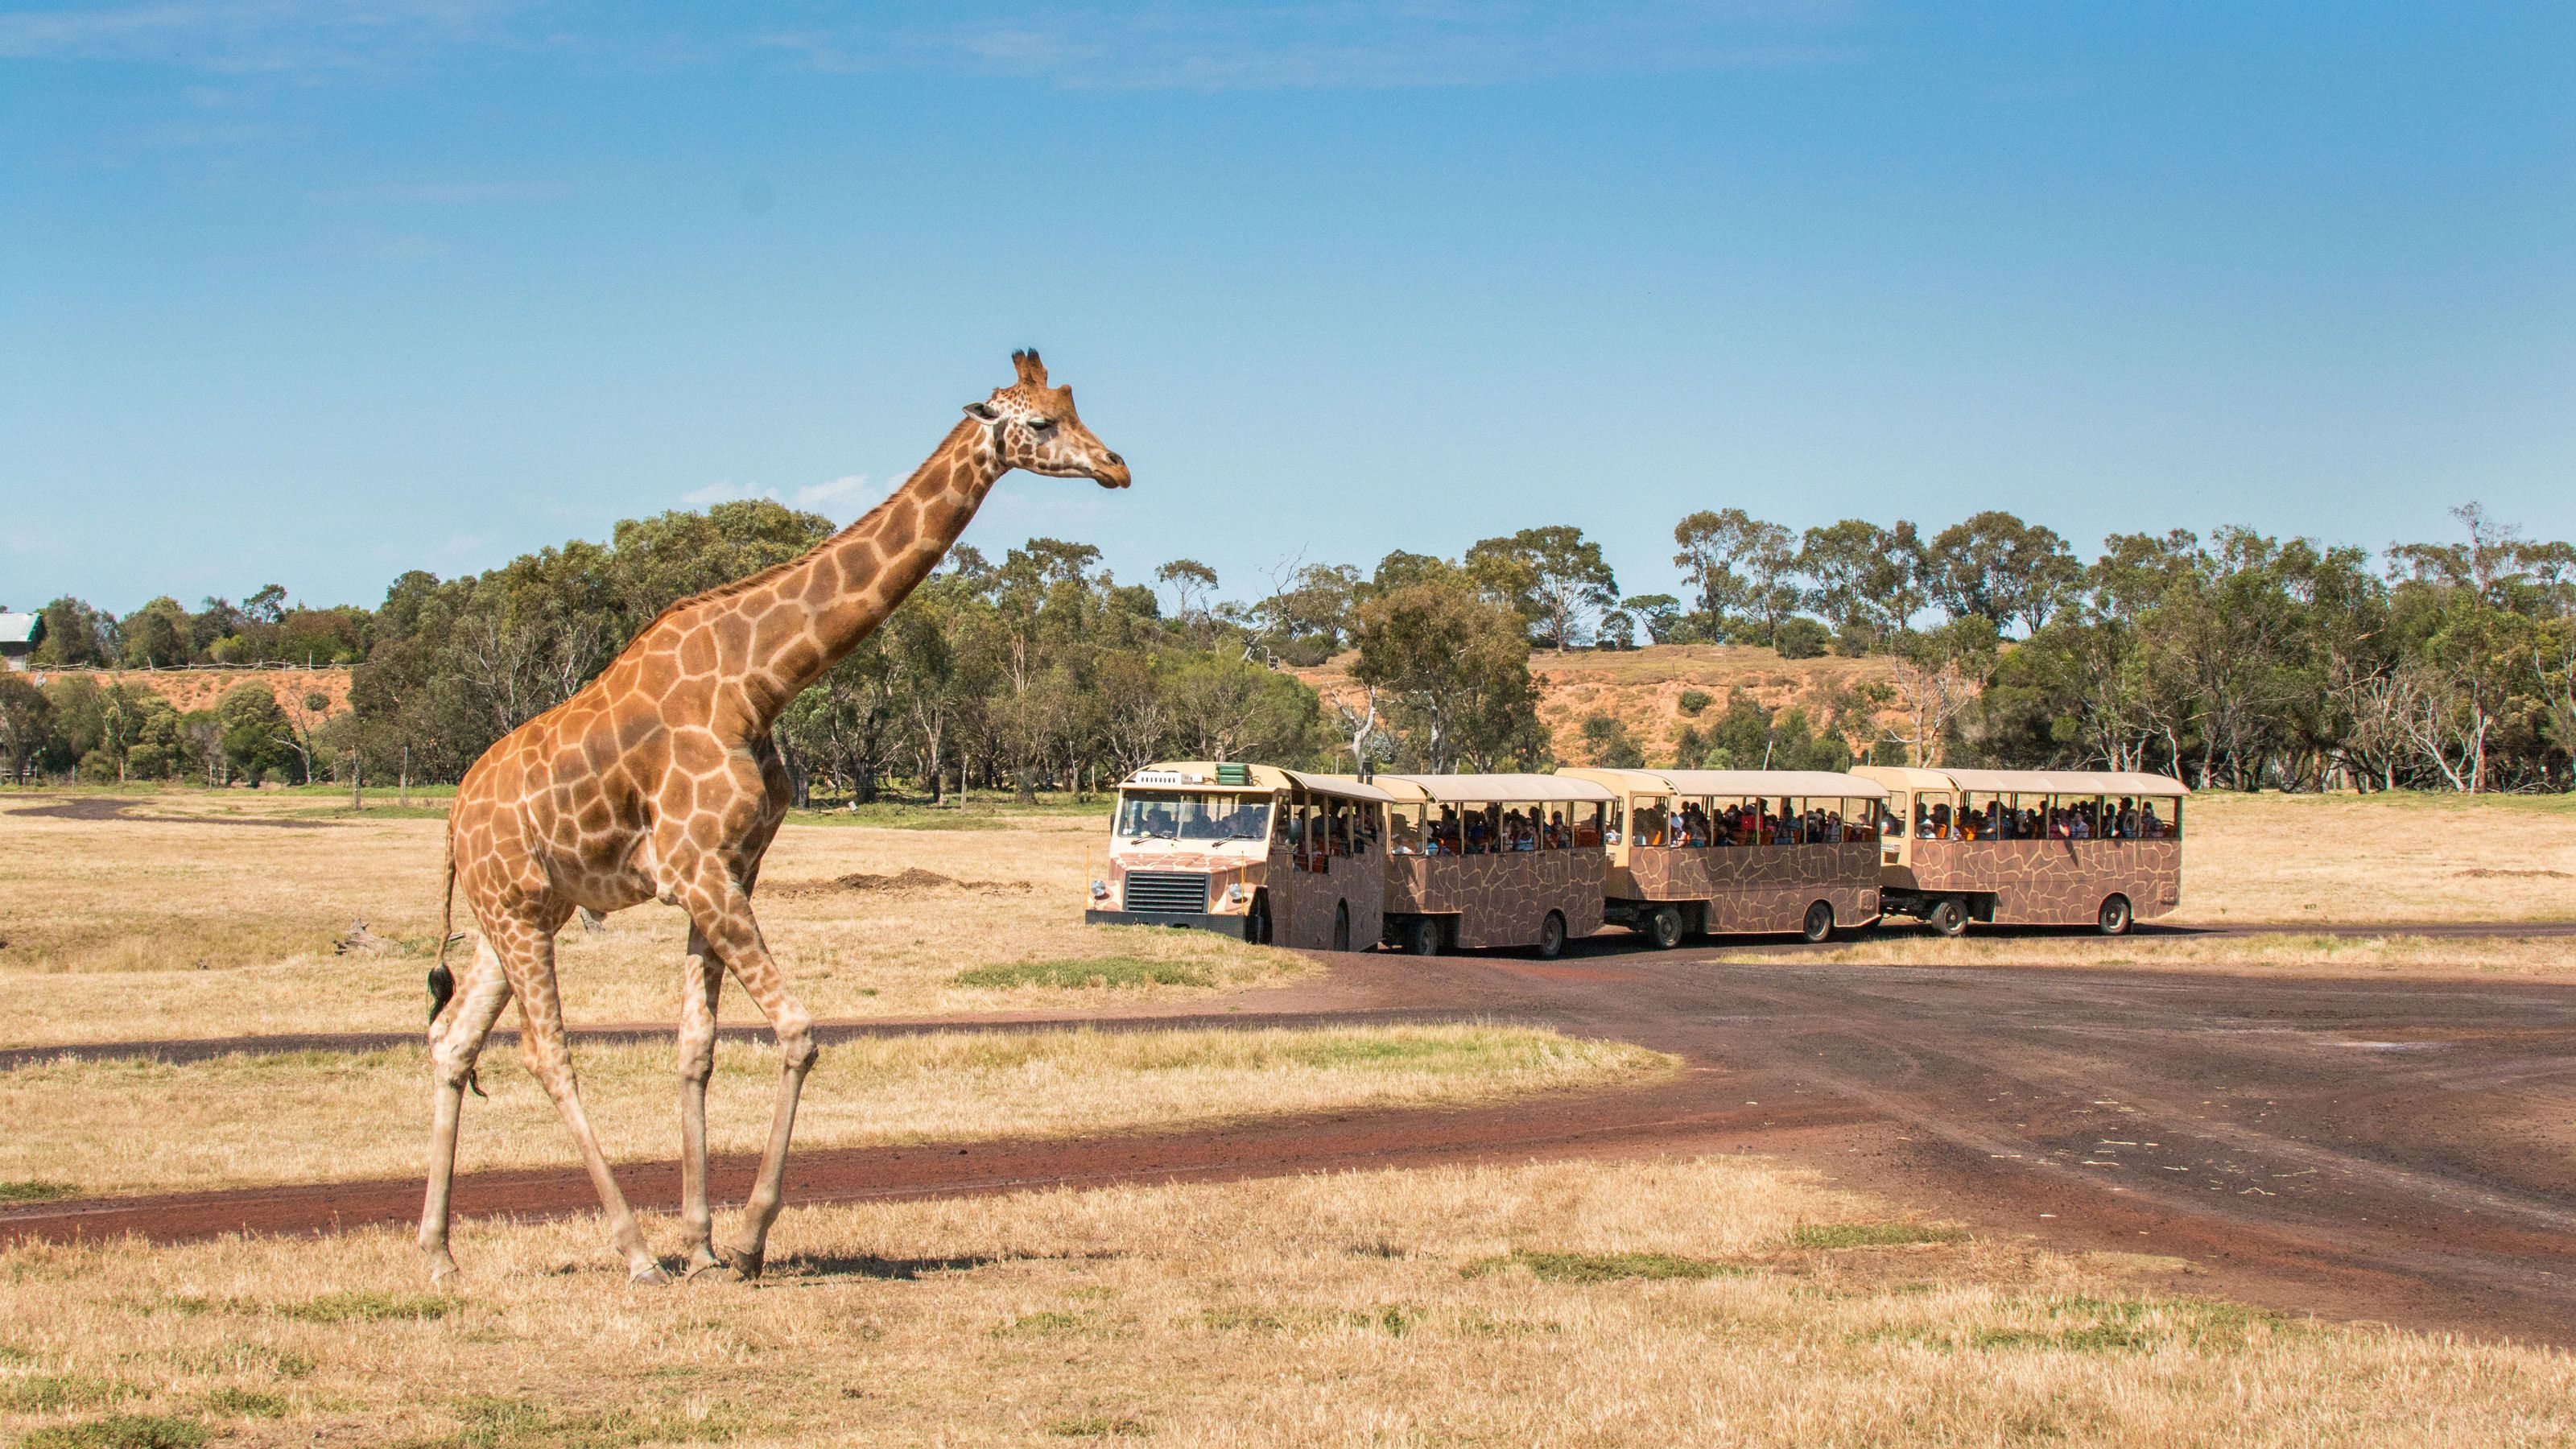 Giraffe at the Werribee Open Range Zoo